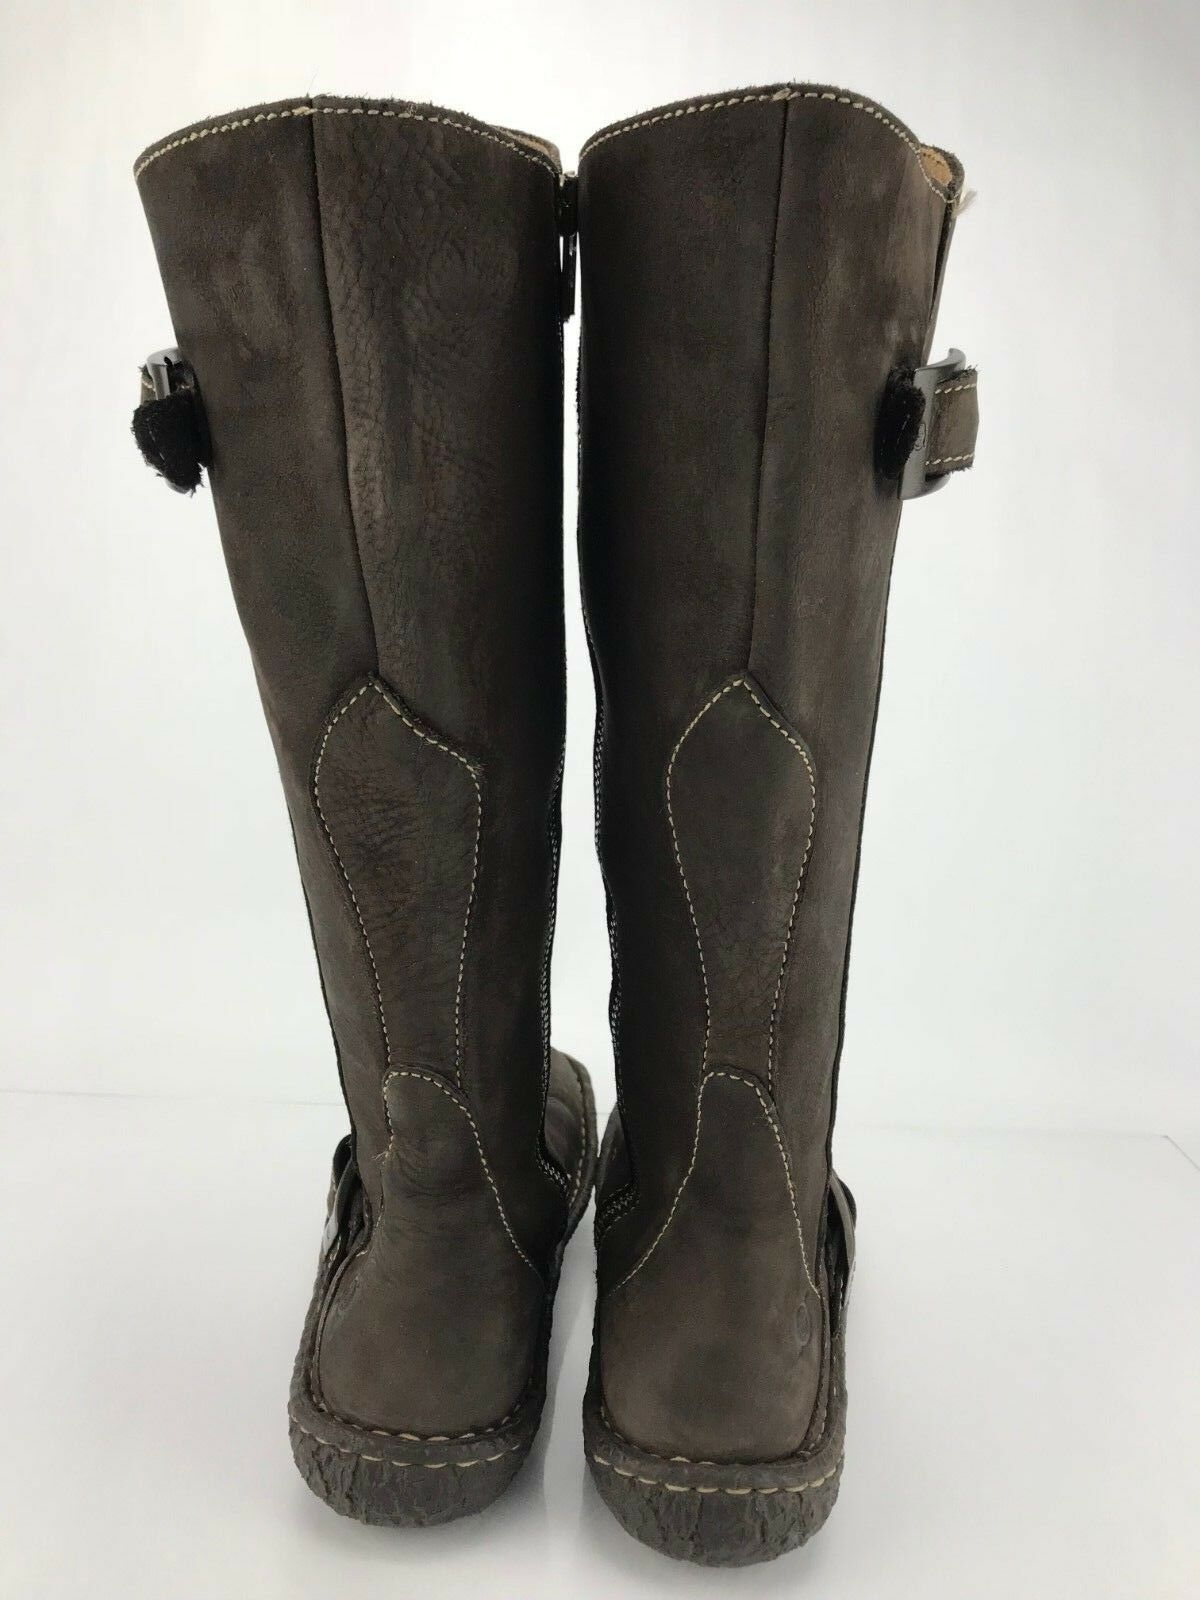 Born Tall Stiefel Stiefel Stiefel braun Leather Side Zipper Calf High Casual damen Größe 6.5 5aaf30